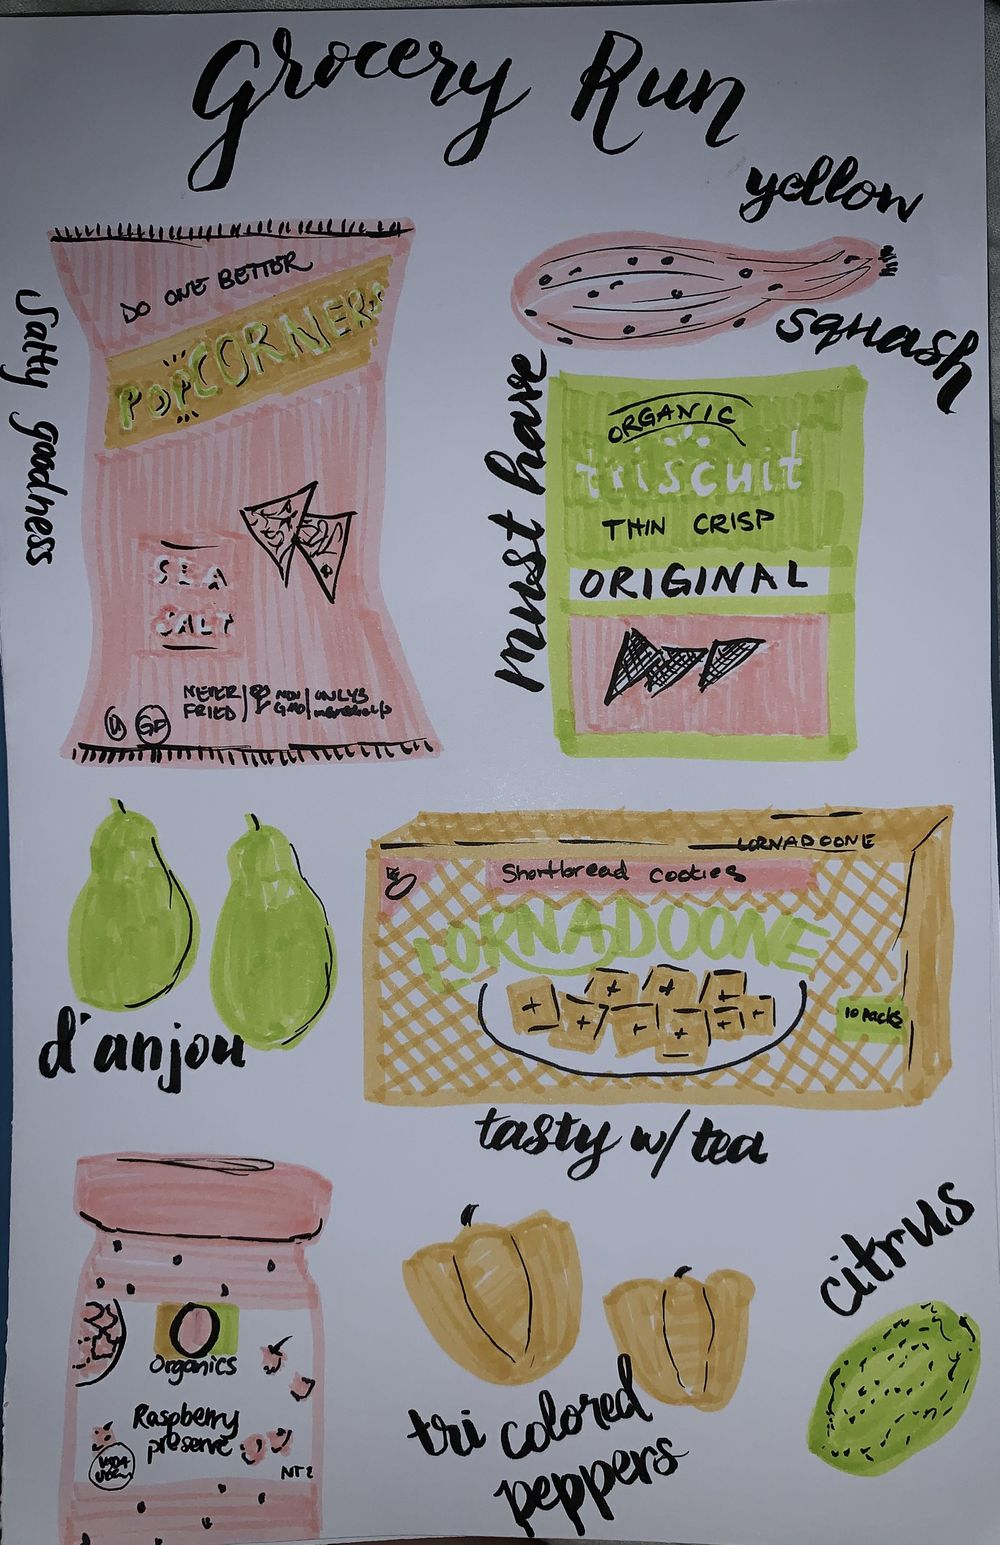 Illustrated Journaling journey - image 5 - student project